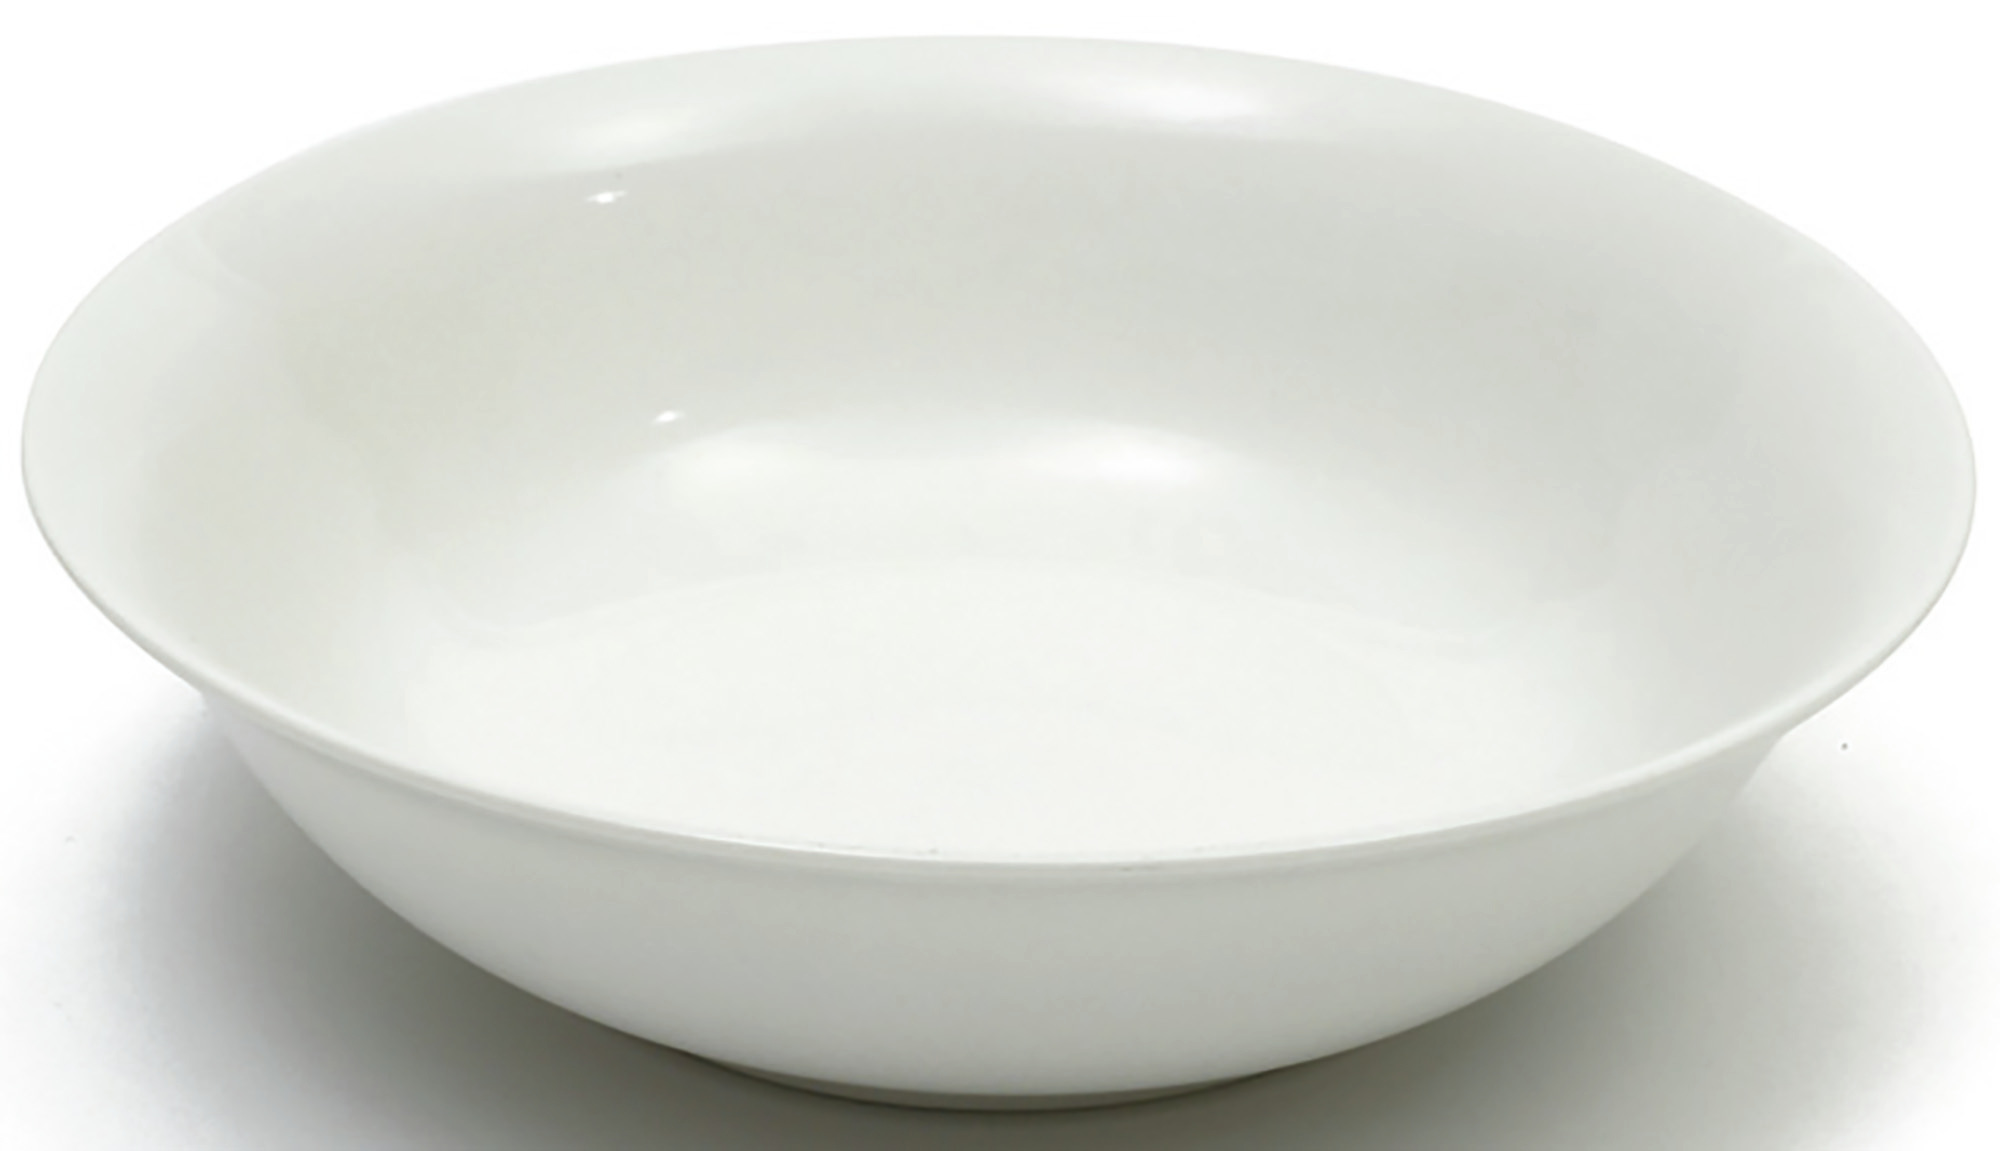 Maxwell & Williams White Basics 20Cm Pasta Bowl